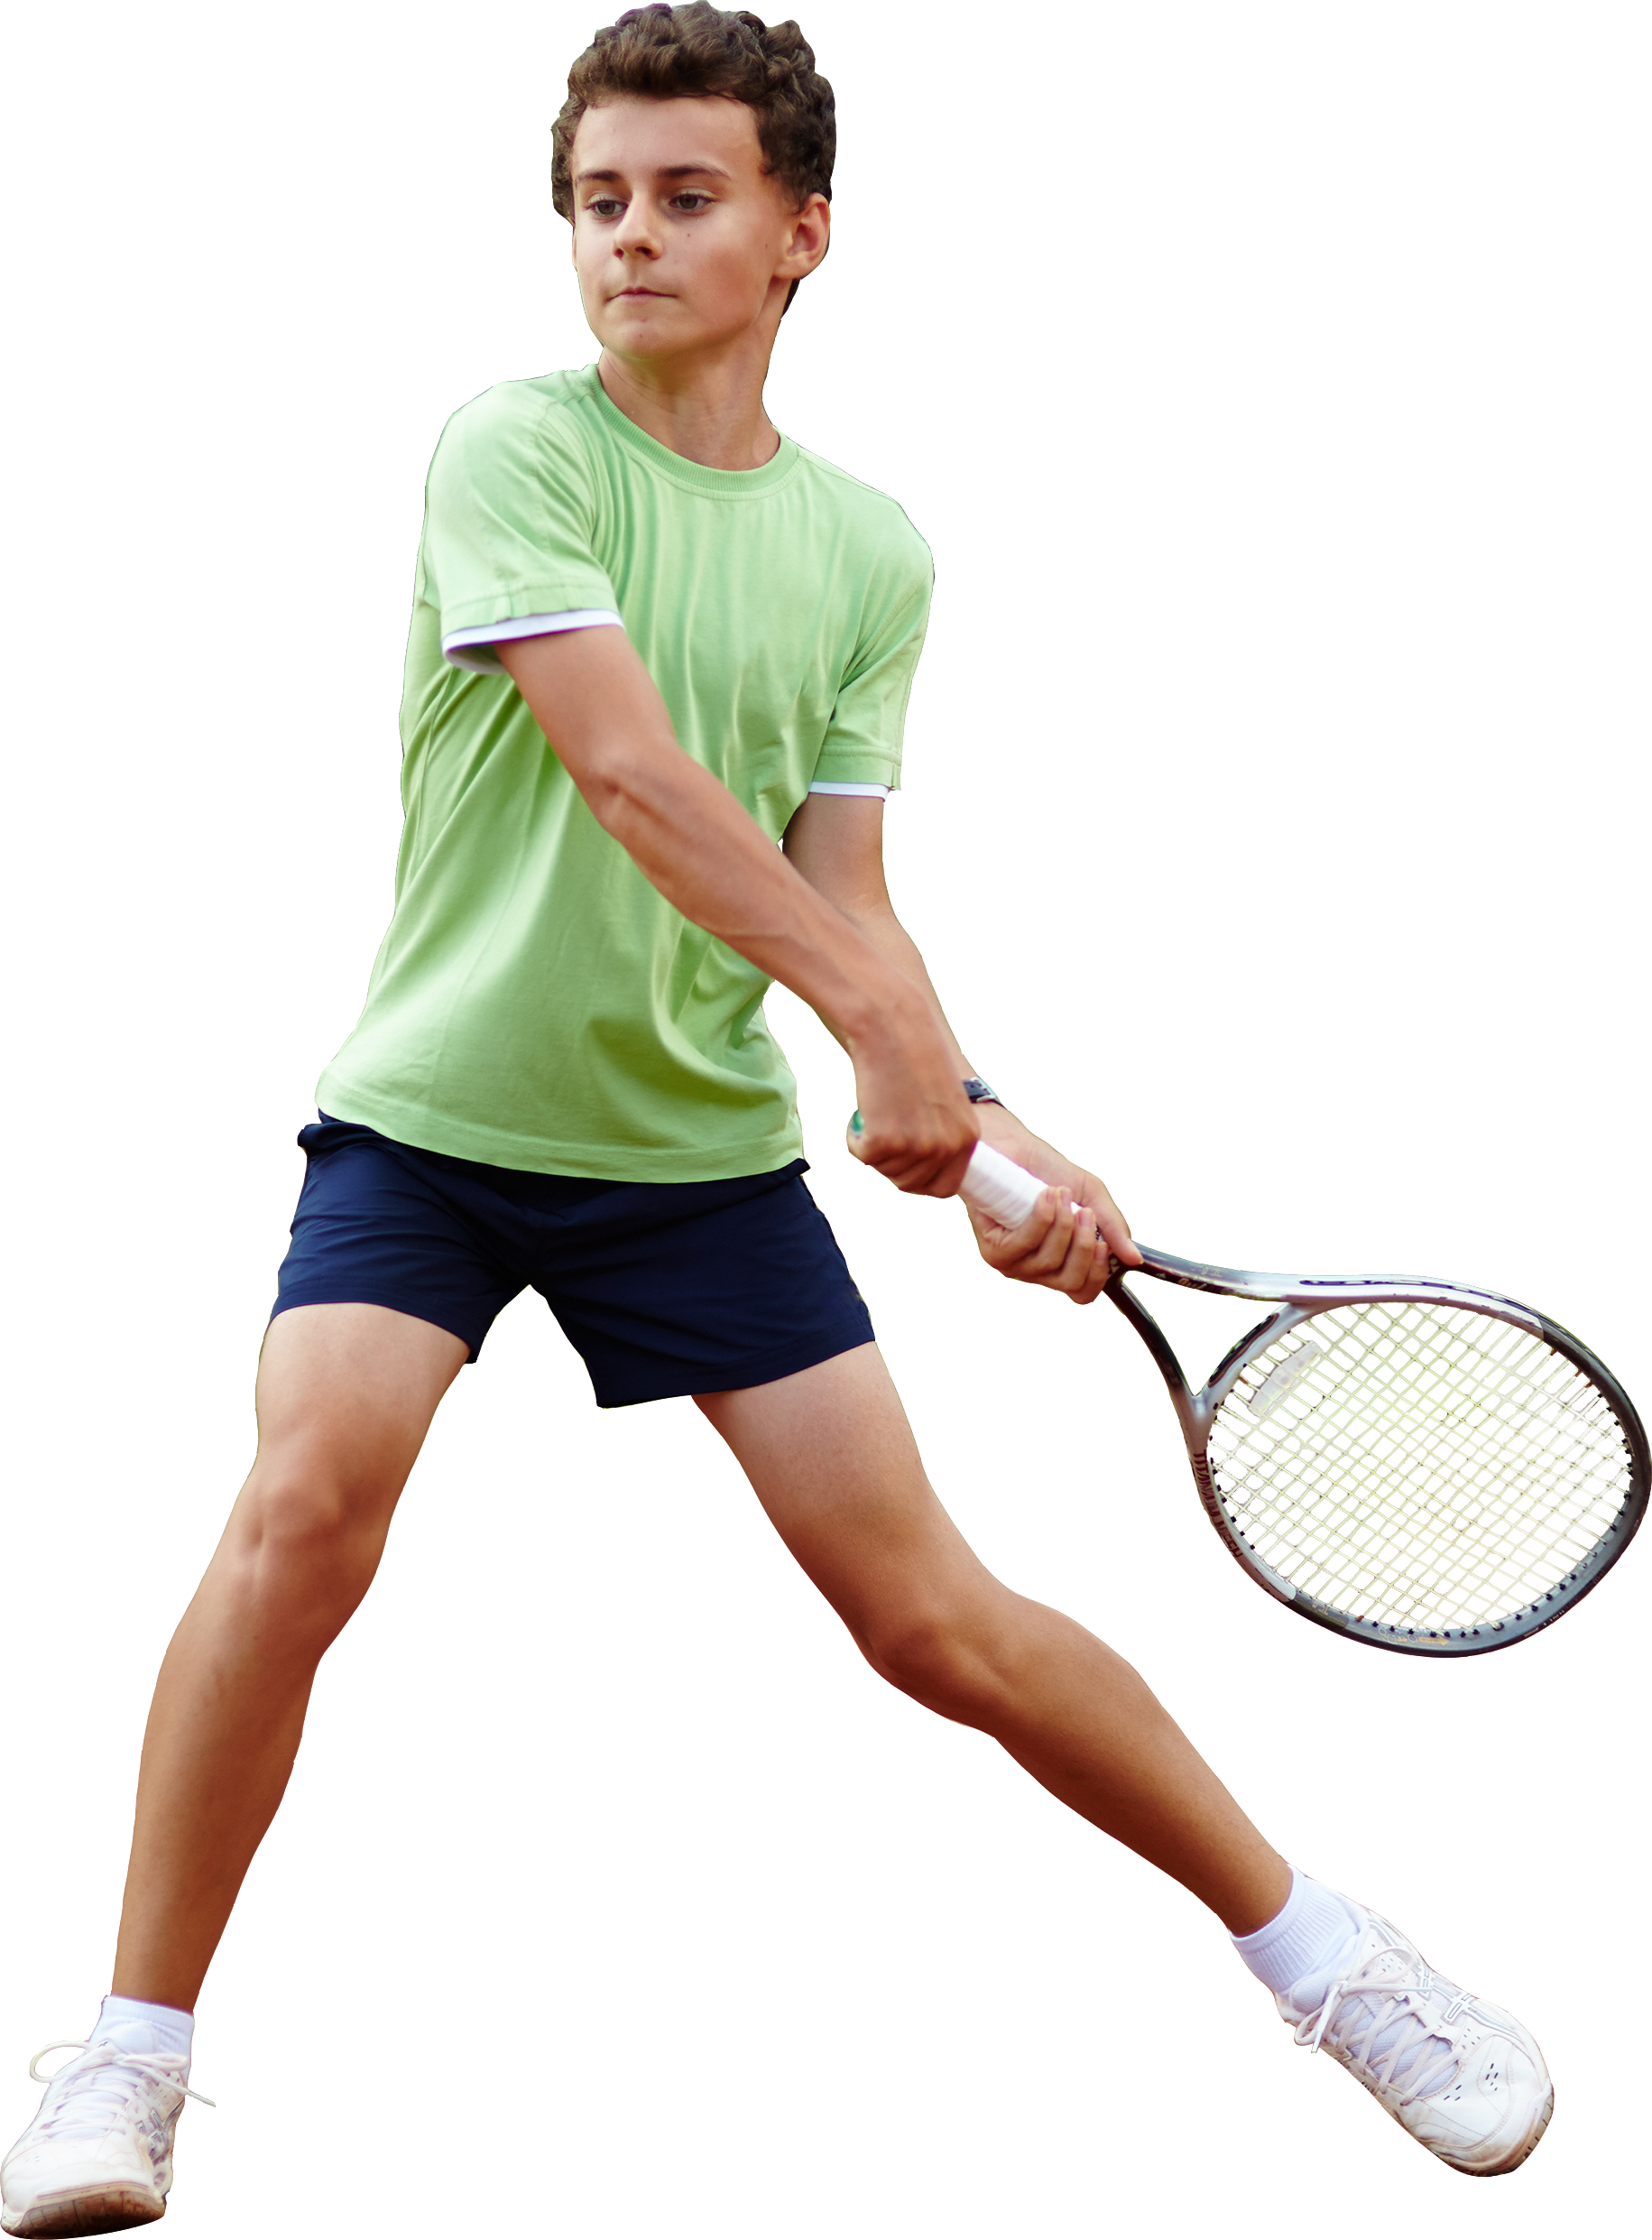 Tennis player boy PNG image